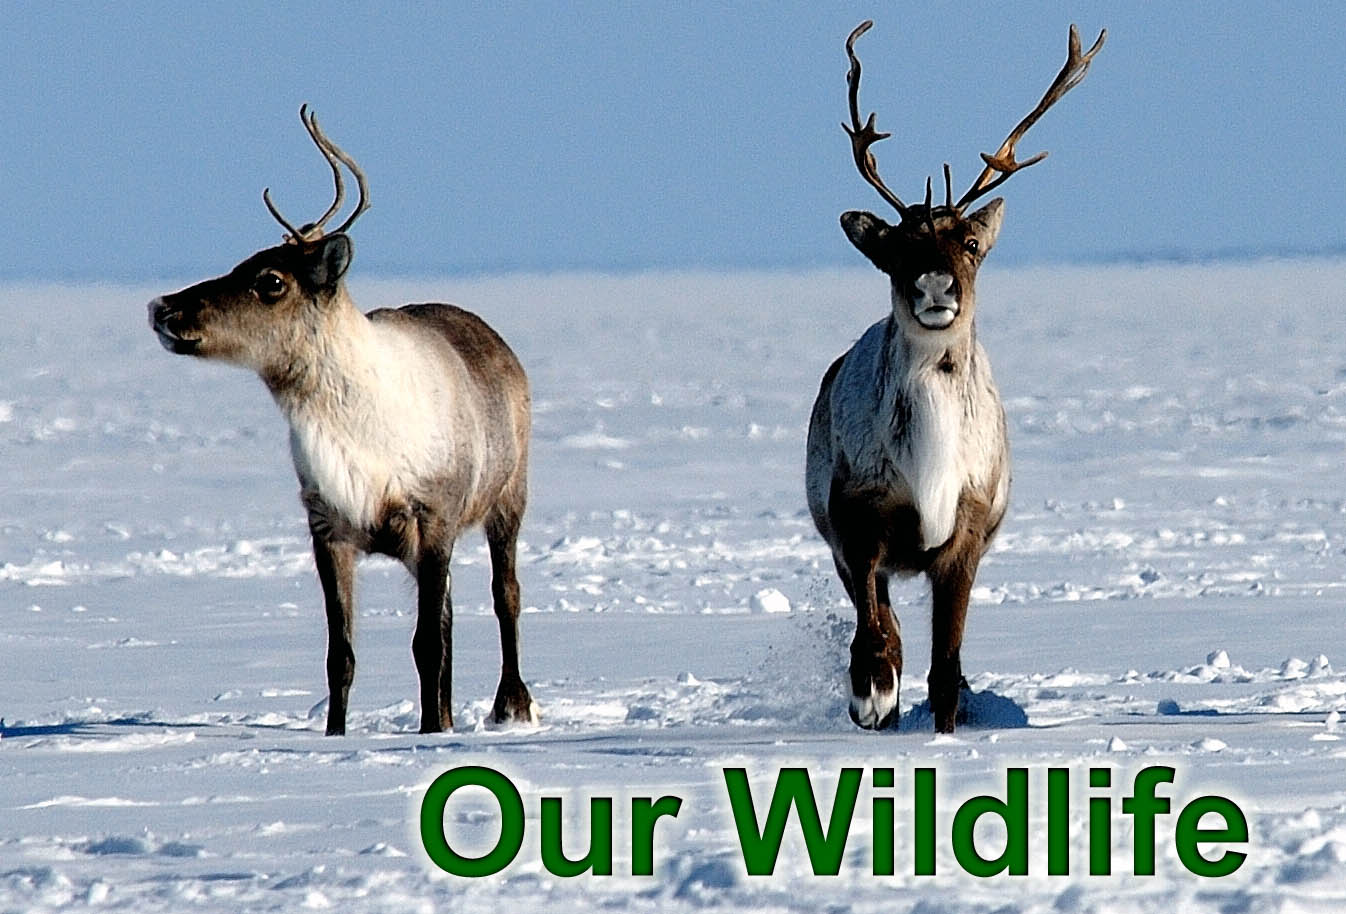 Click here for information on Our Wildlife